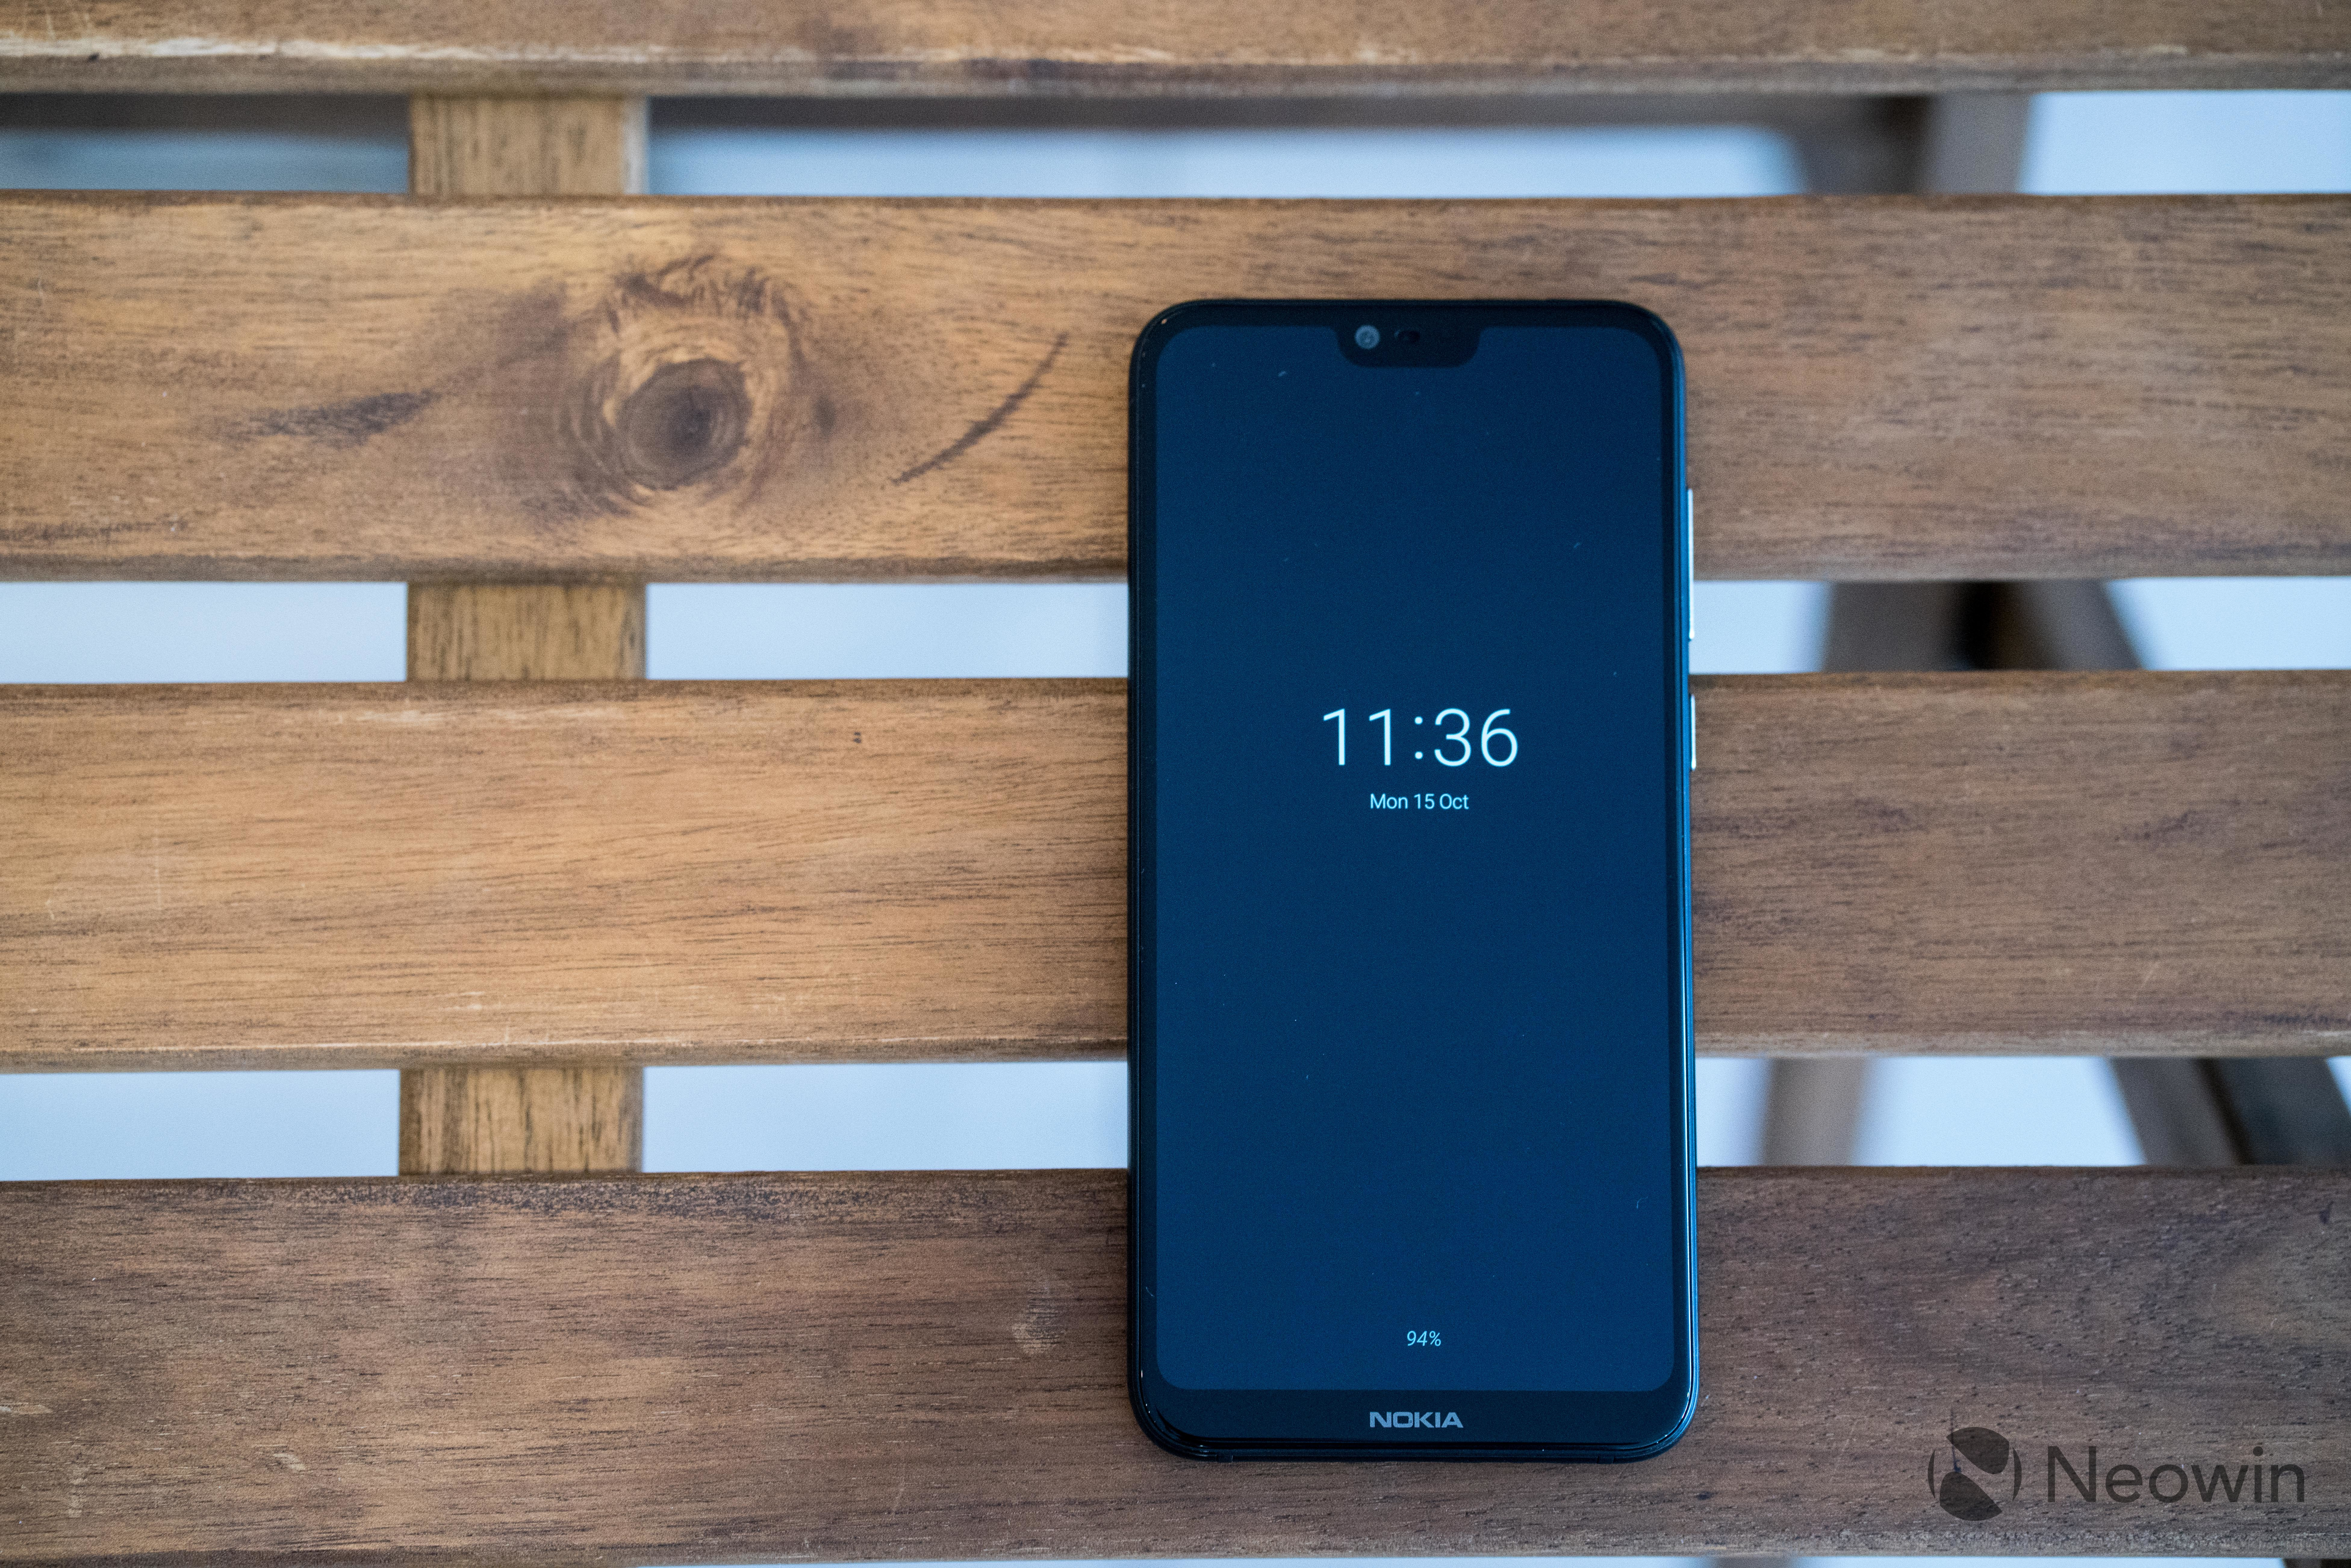 Wallpaper Nokia 61 Plus The Best Hd 6 Source 1 Review Hmd S Most Appealing Midranger Yet Neowin